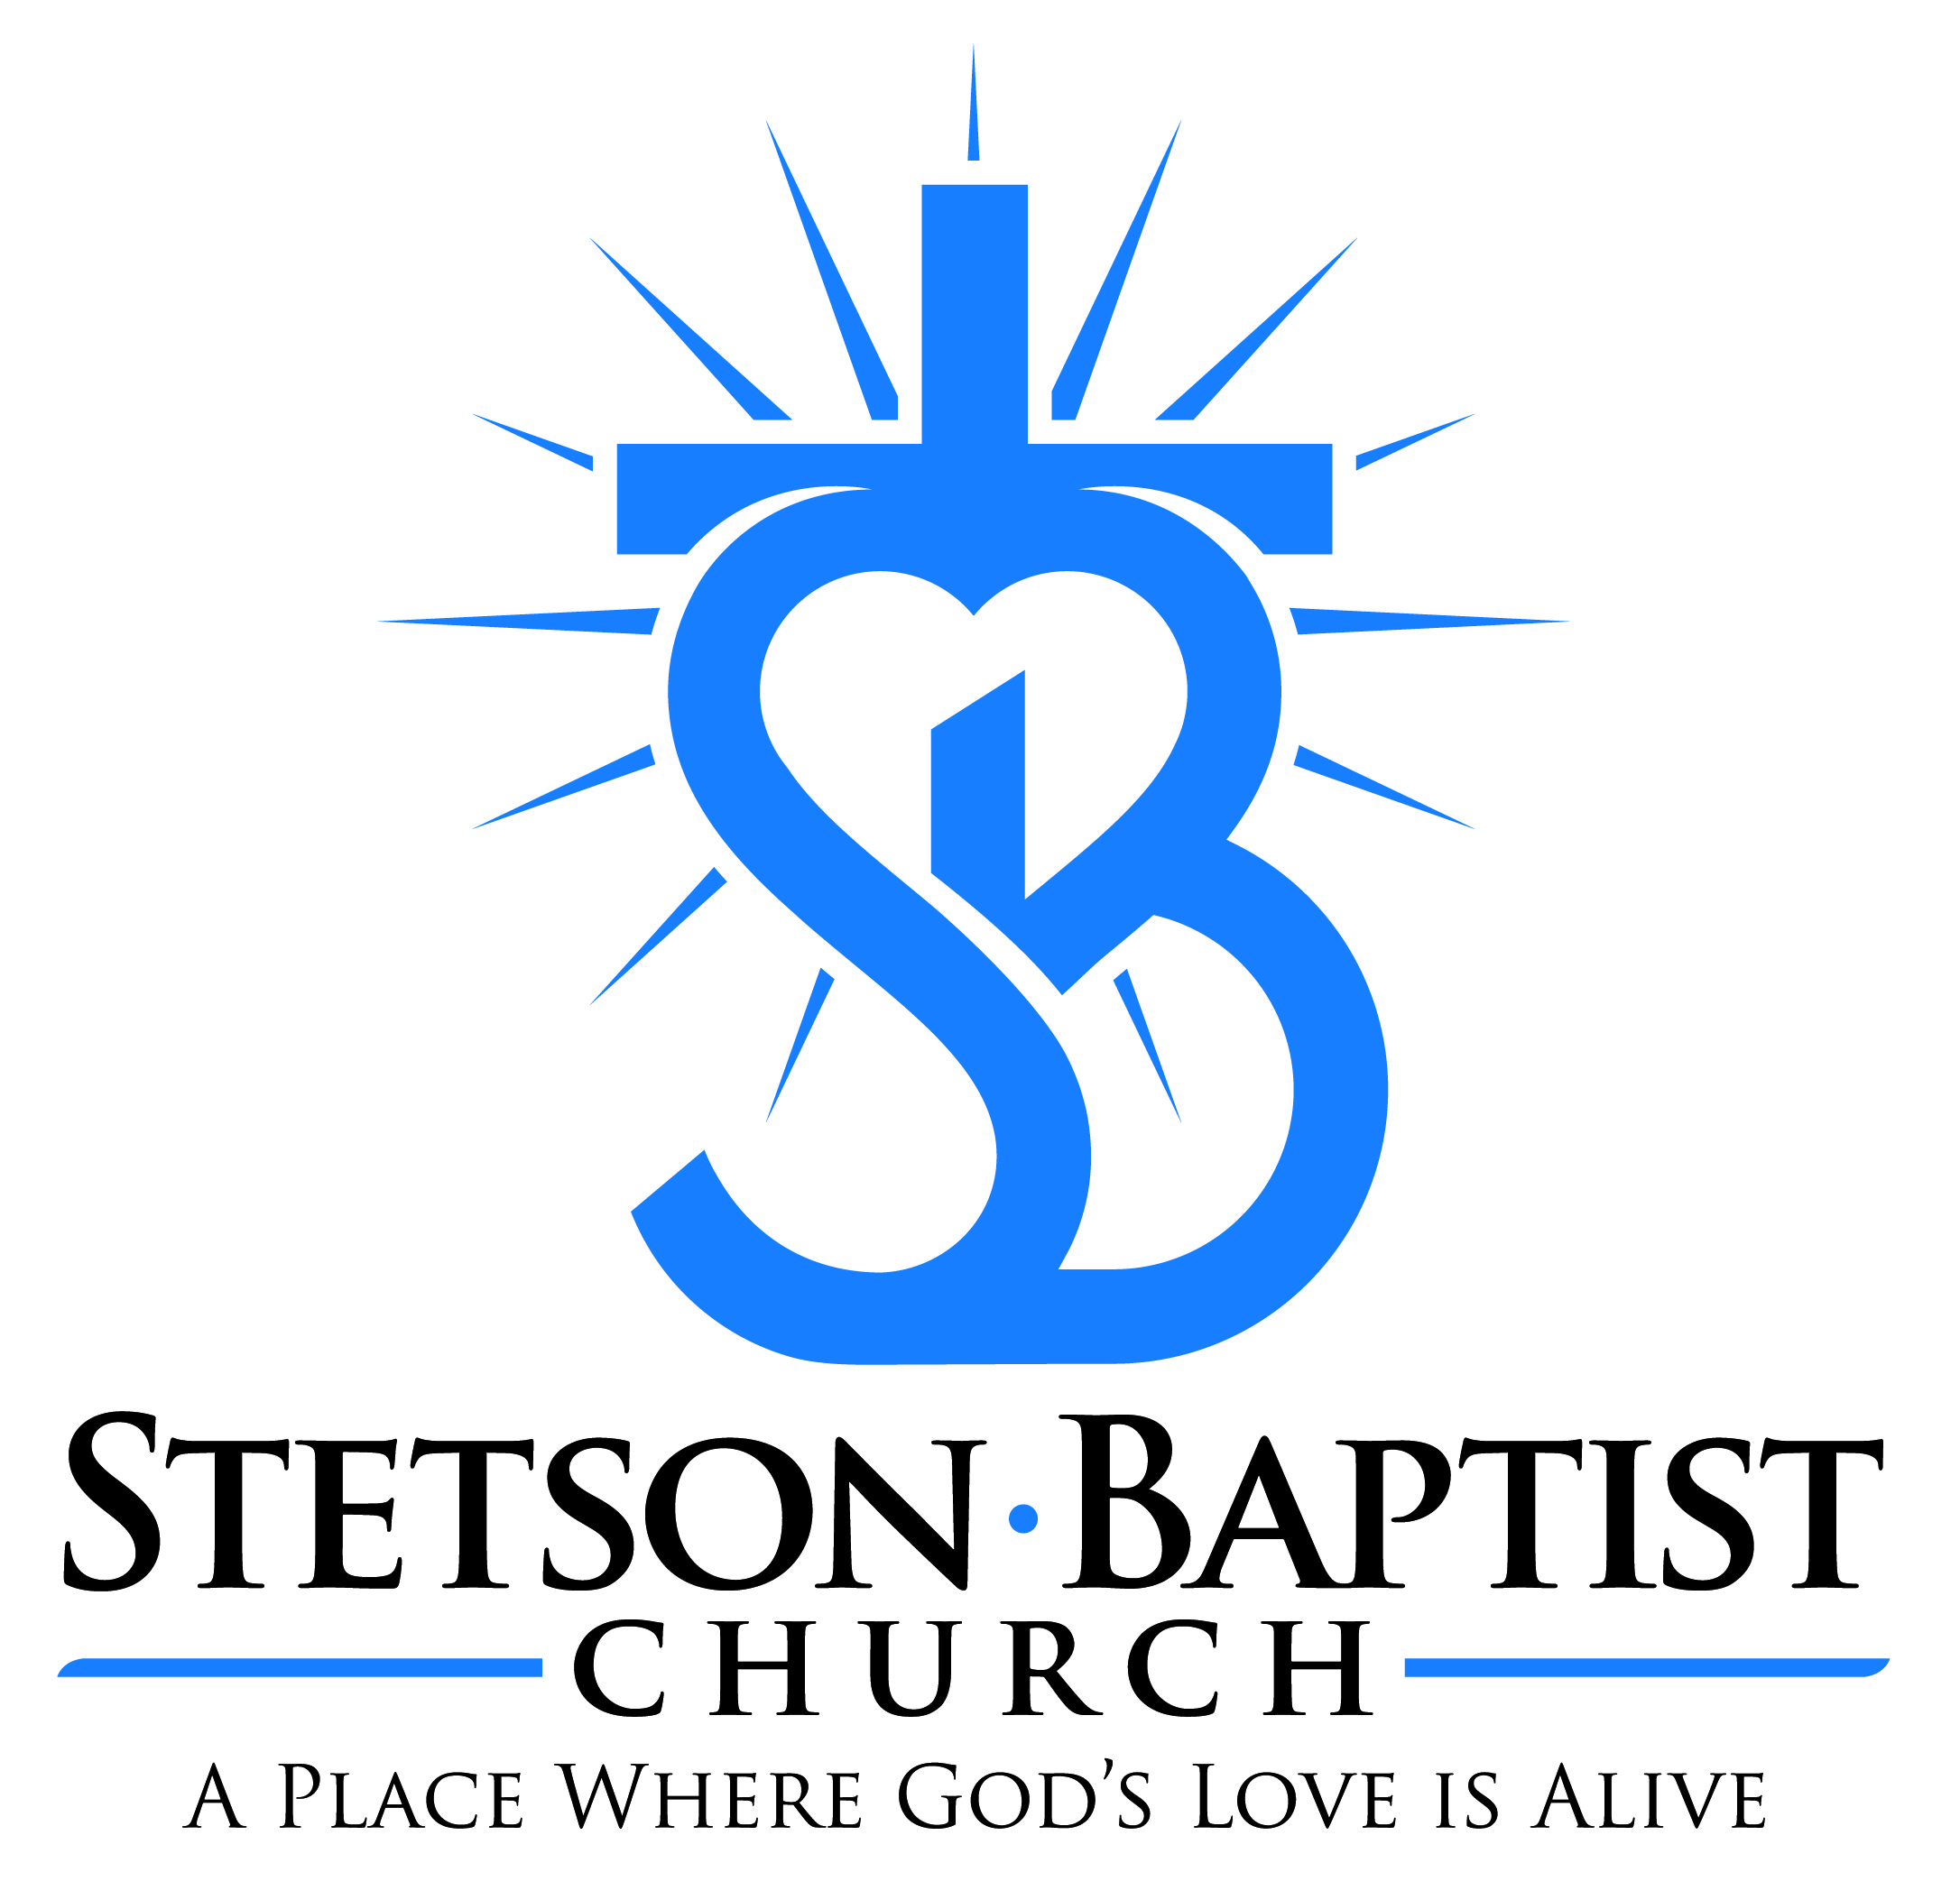 Stetson Baptist Church